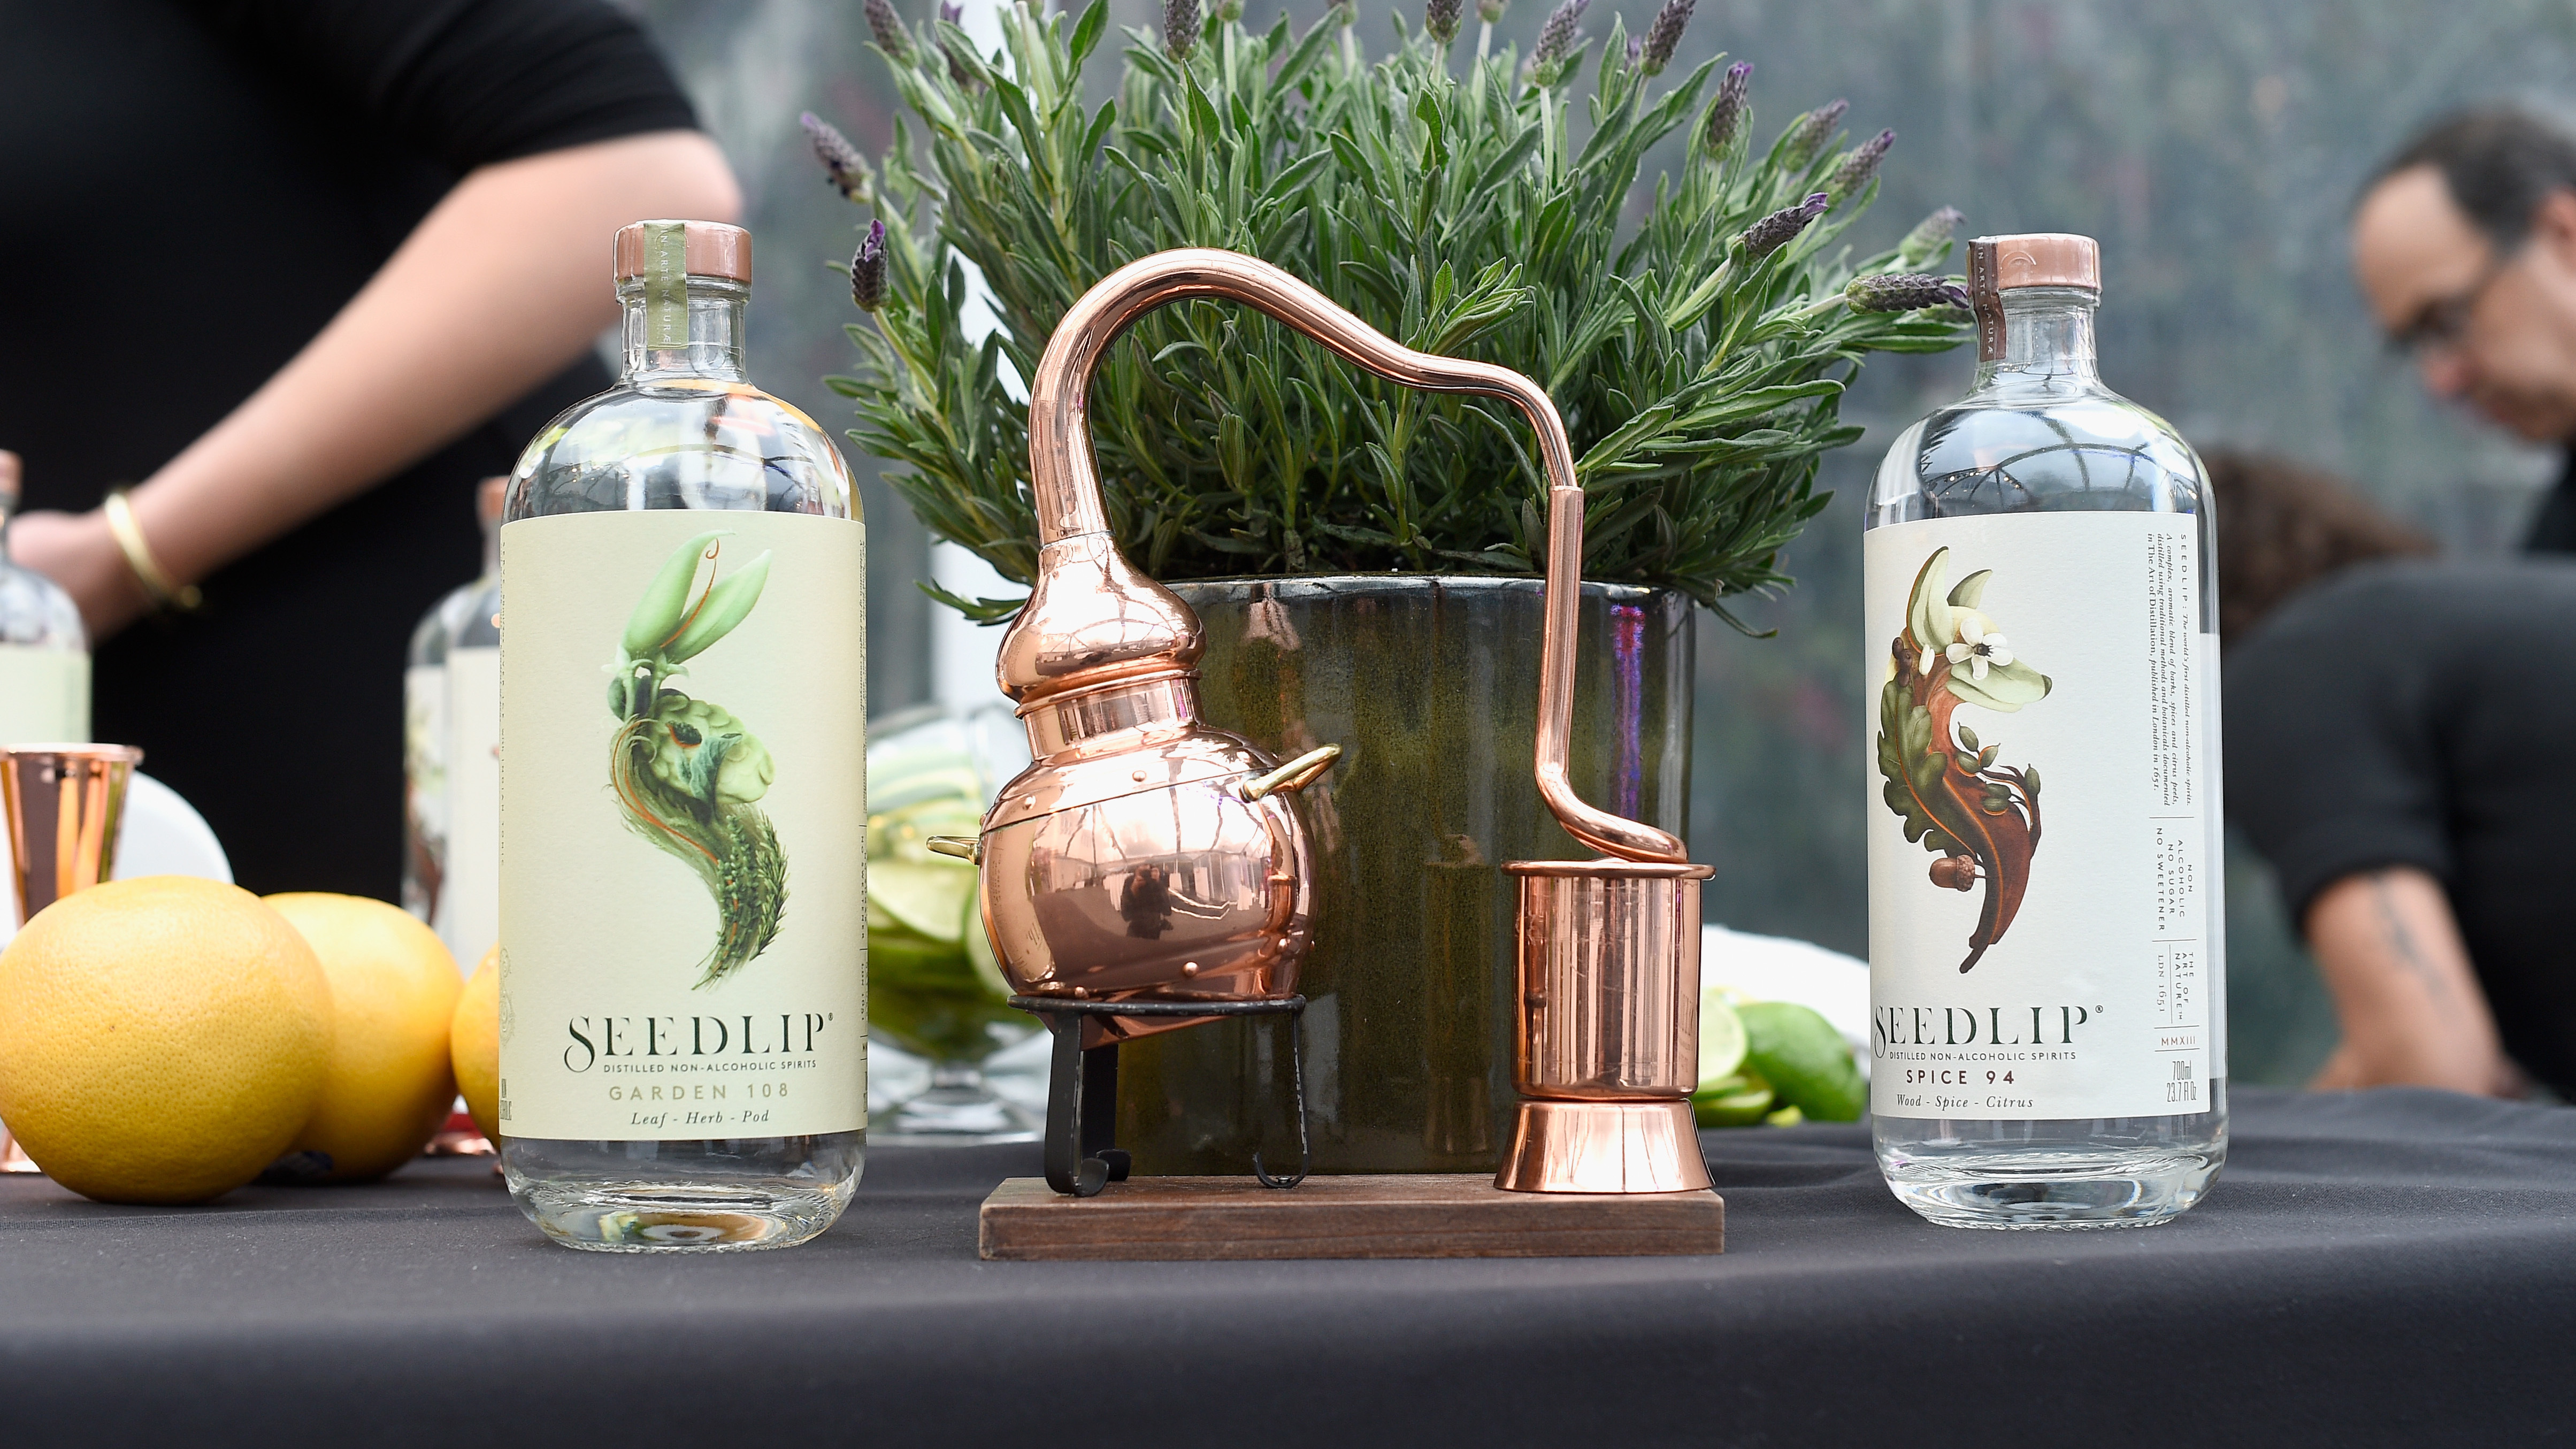 Seedlip, a distilled nonalcoholic spirit, was created when Ben Branson came across a 17th-century book that contained nonalcoholic remedies for a variety of maladies — from epilepsy to kidney stone. (Kevork Djansezian/Getty Images)